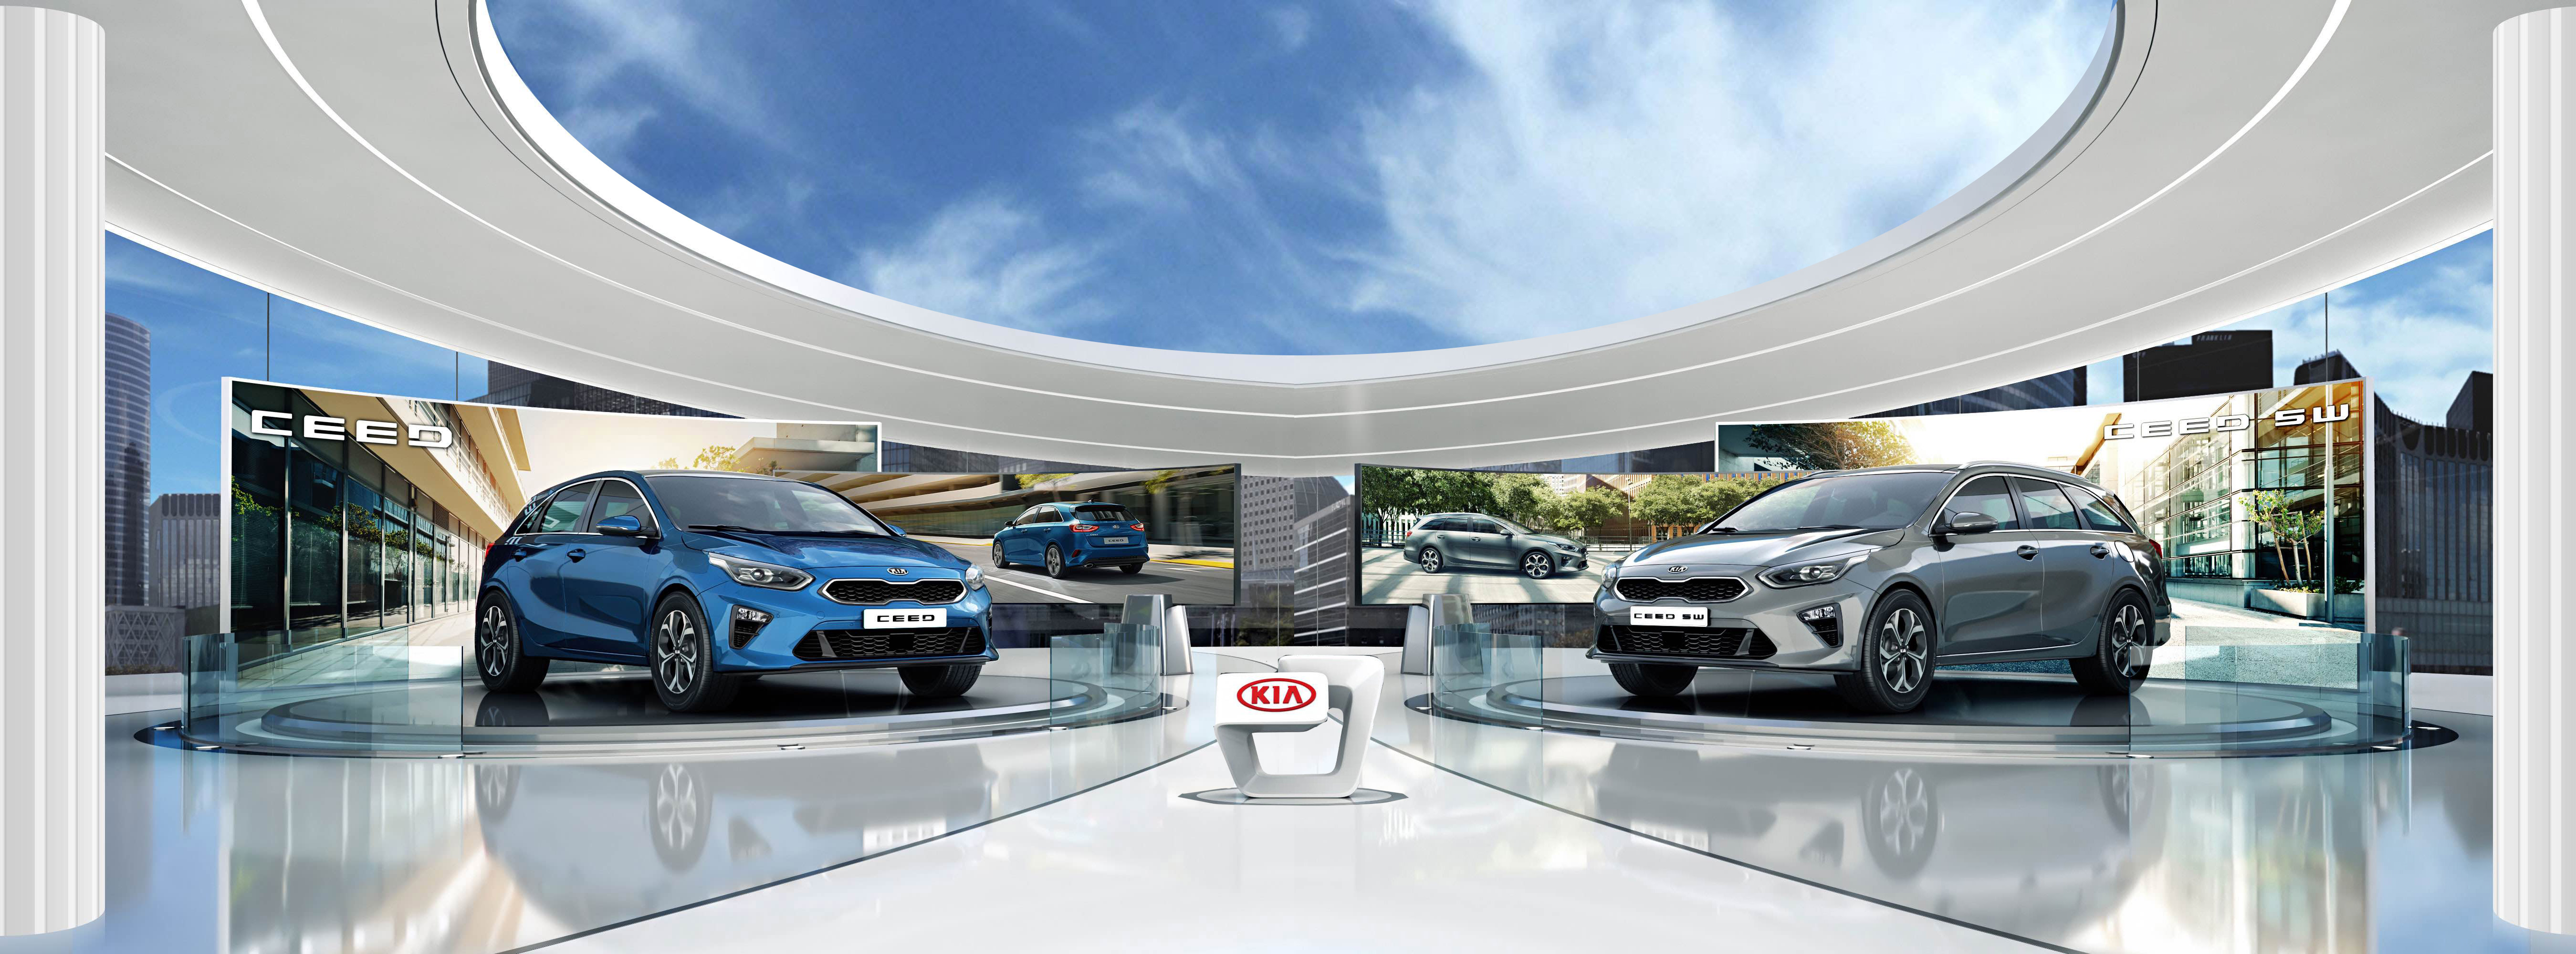 Kia Virtual Showroom